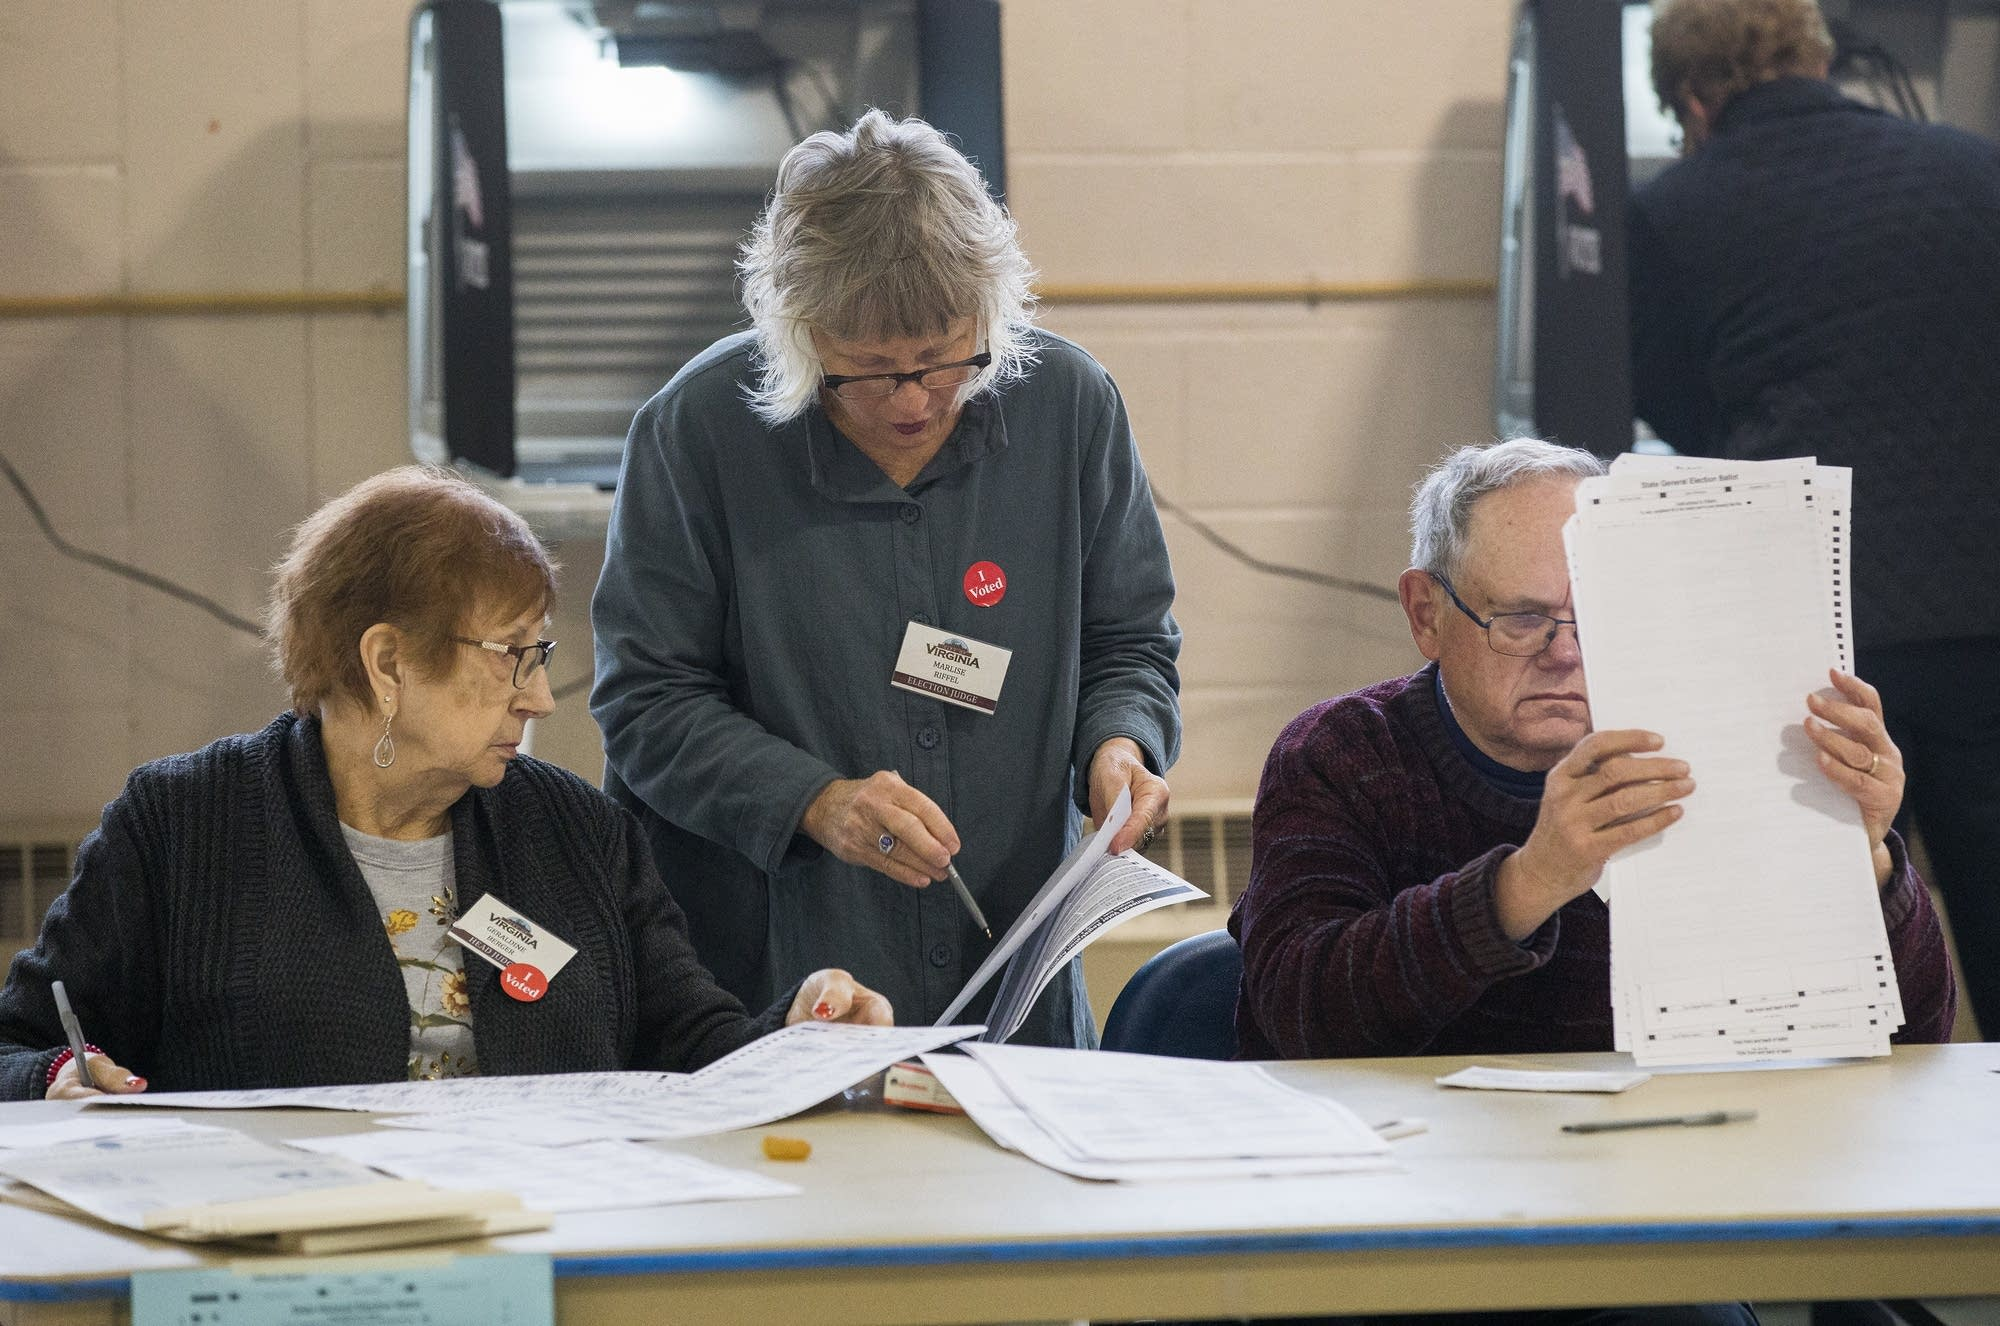 From left: Election judges Geraldine Berger, Marlise Riffel and Wayne Christiansen discuss election-related information Tuesday, November 6, 2018 at the Miners Memorial Building in Virginia, Minn.   Photo: Derek Montgomery for MPR News